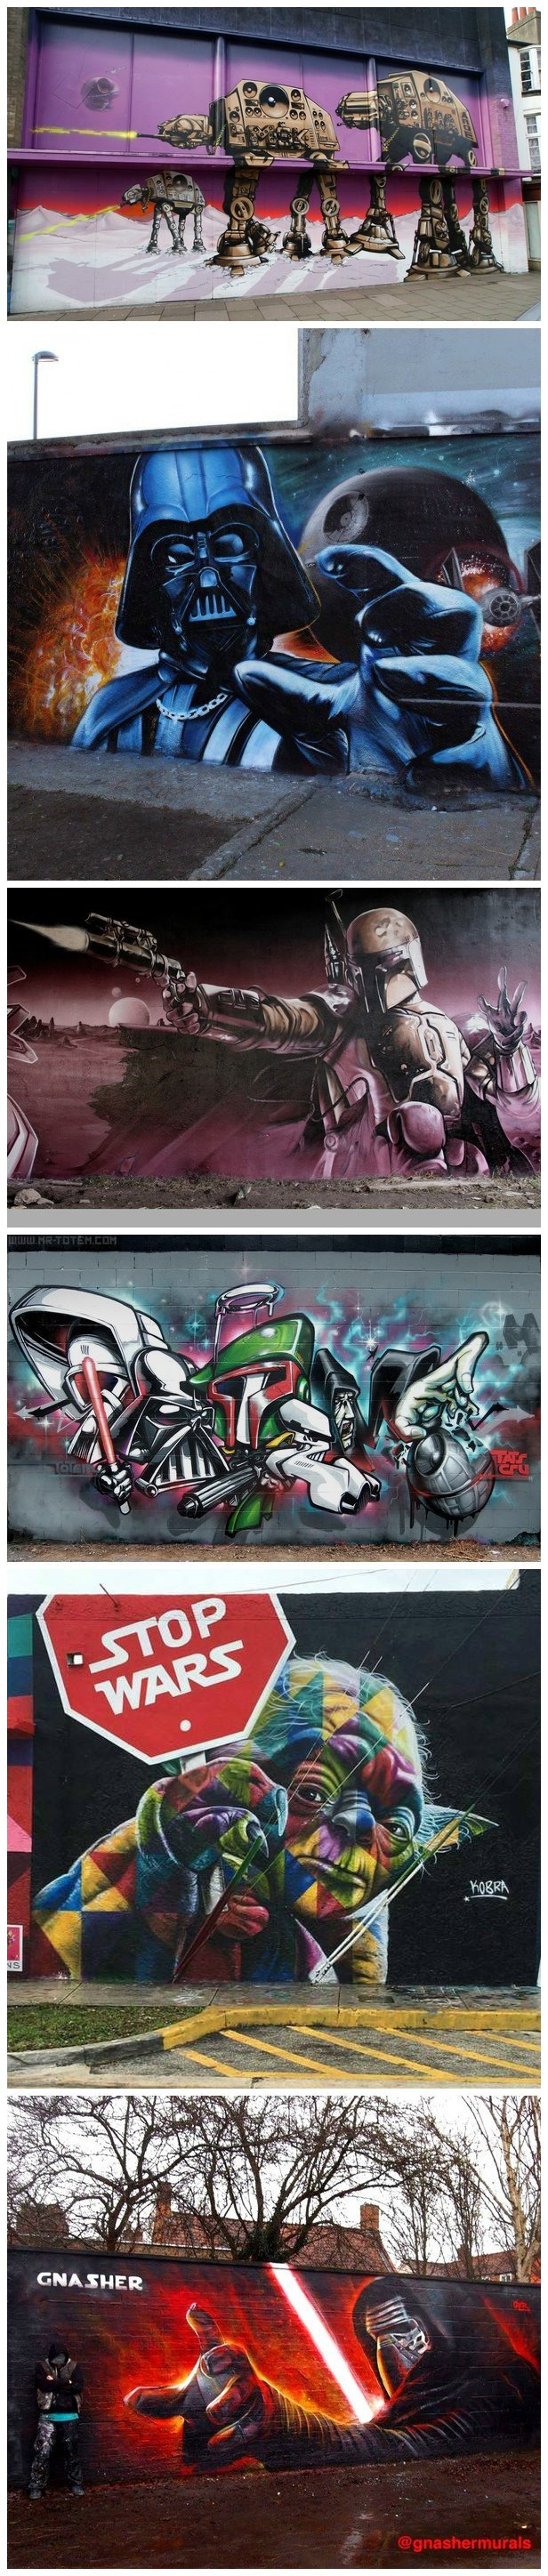 scifi star wars Fan Art graffiti - 8602688768